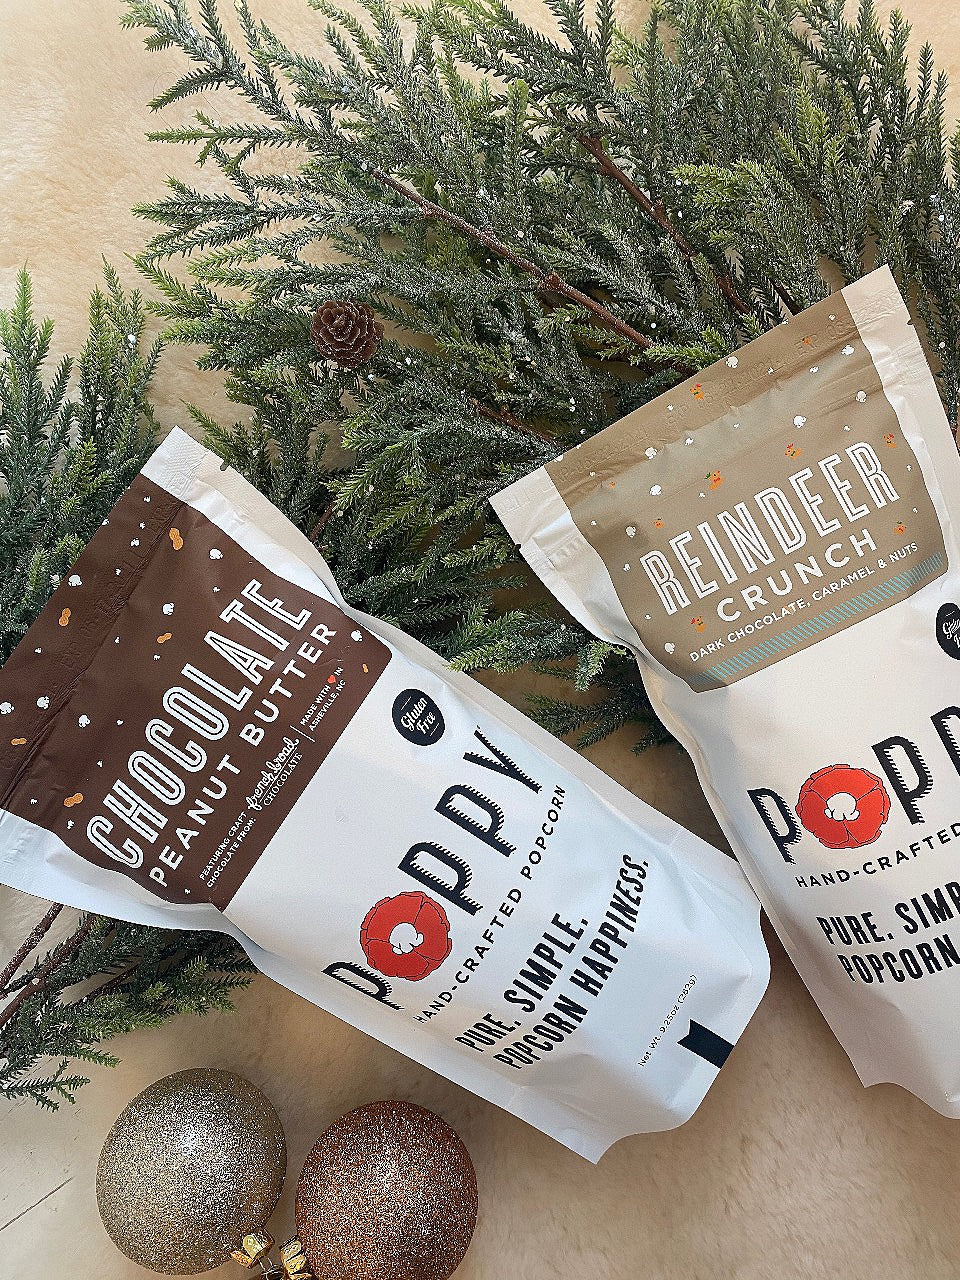 POPPY HAND-CRAFTED POPCORN - CHOCOLATE PEANUT BUTTER MARKET BAG